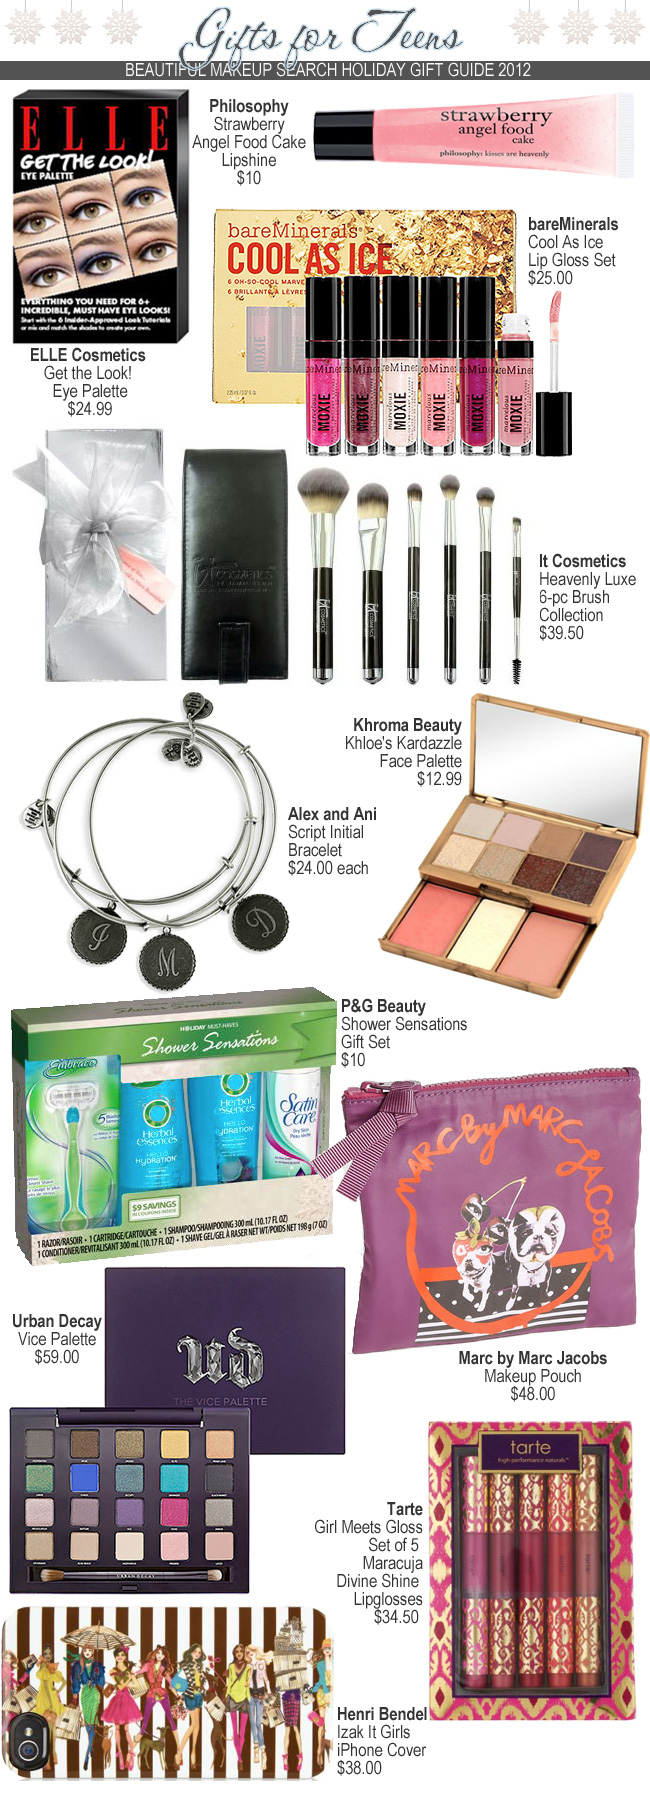 Holiday Gift Guide: Gifts for Teens. — Beautiful Makeup Search